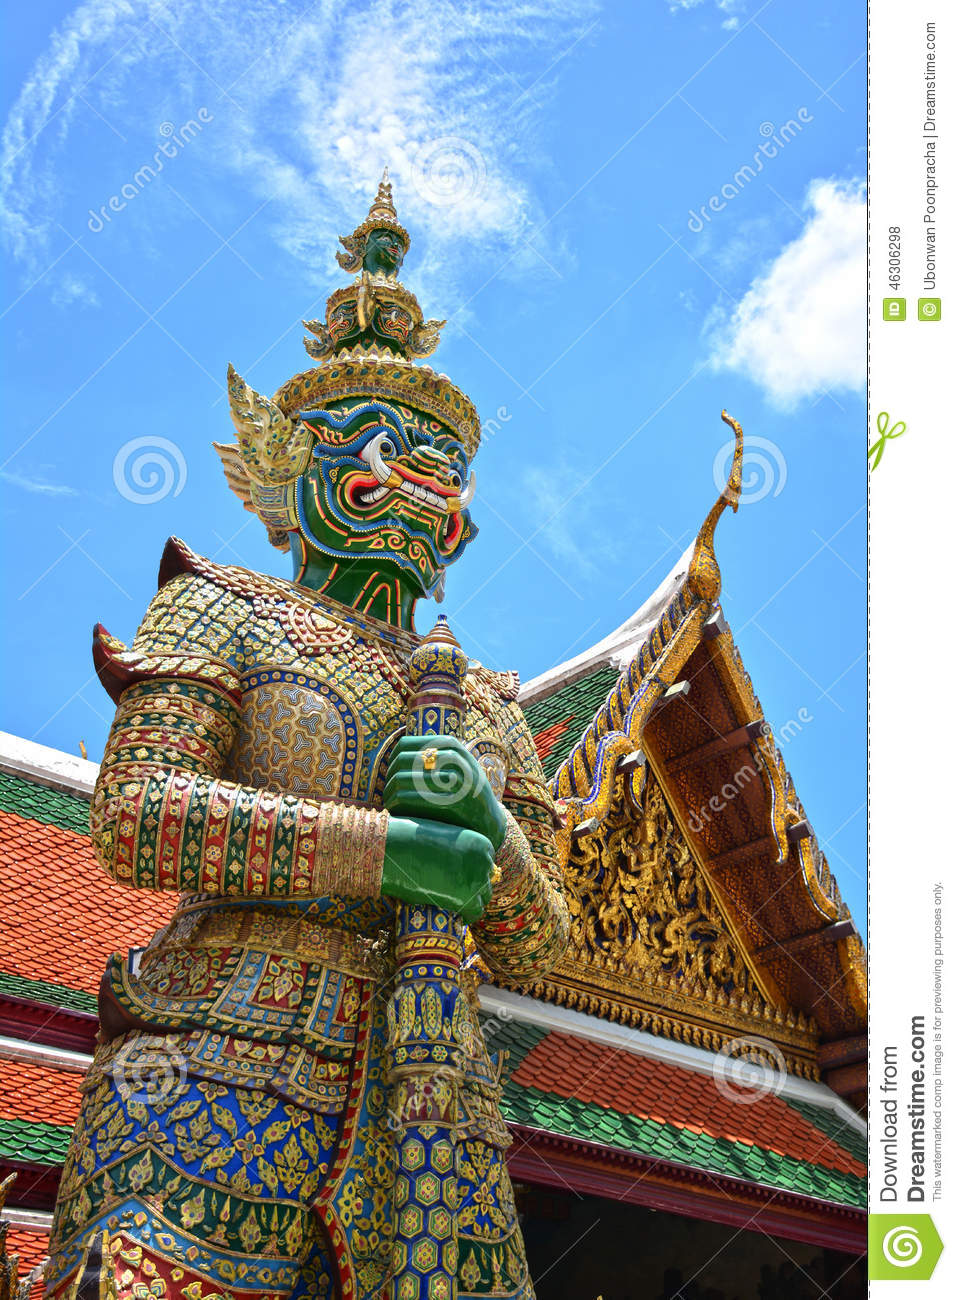 Giant Statue in Wat Phra Kaew Grand Palace, Bangkok, Thailand.